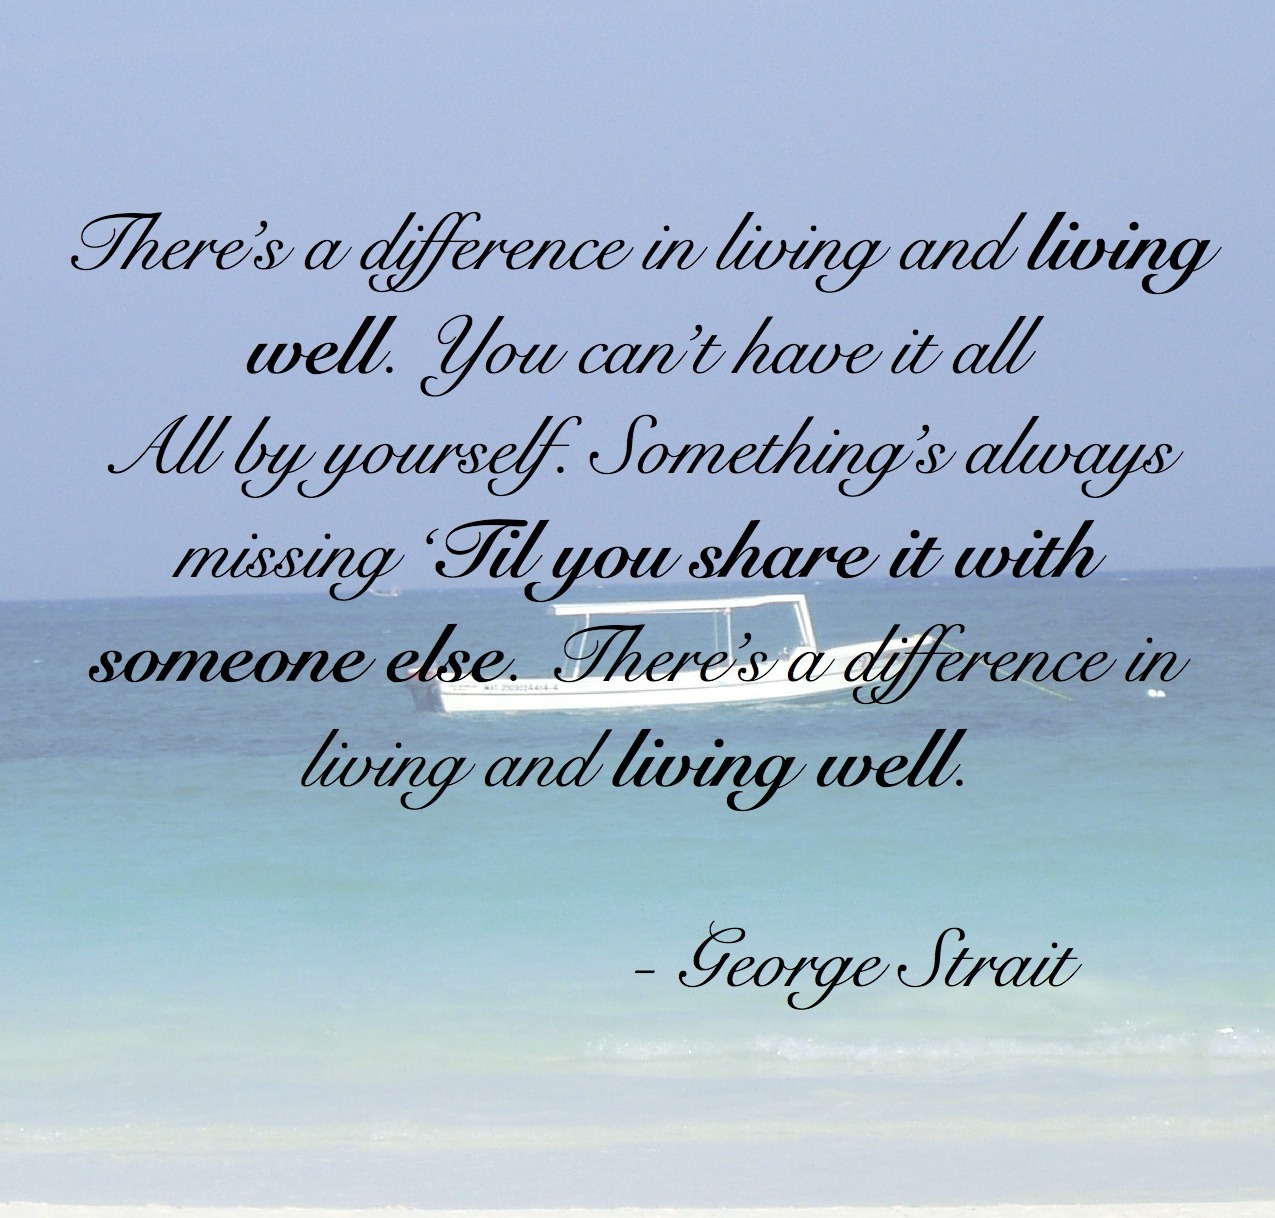 George Straits Quotes Famous And Not Much Sualci Quotes